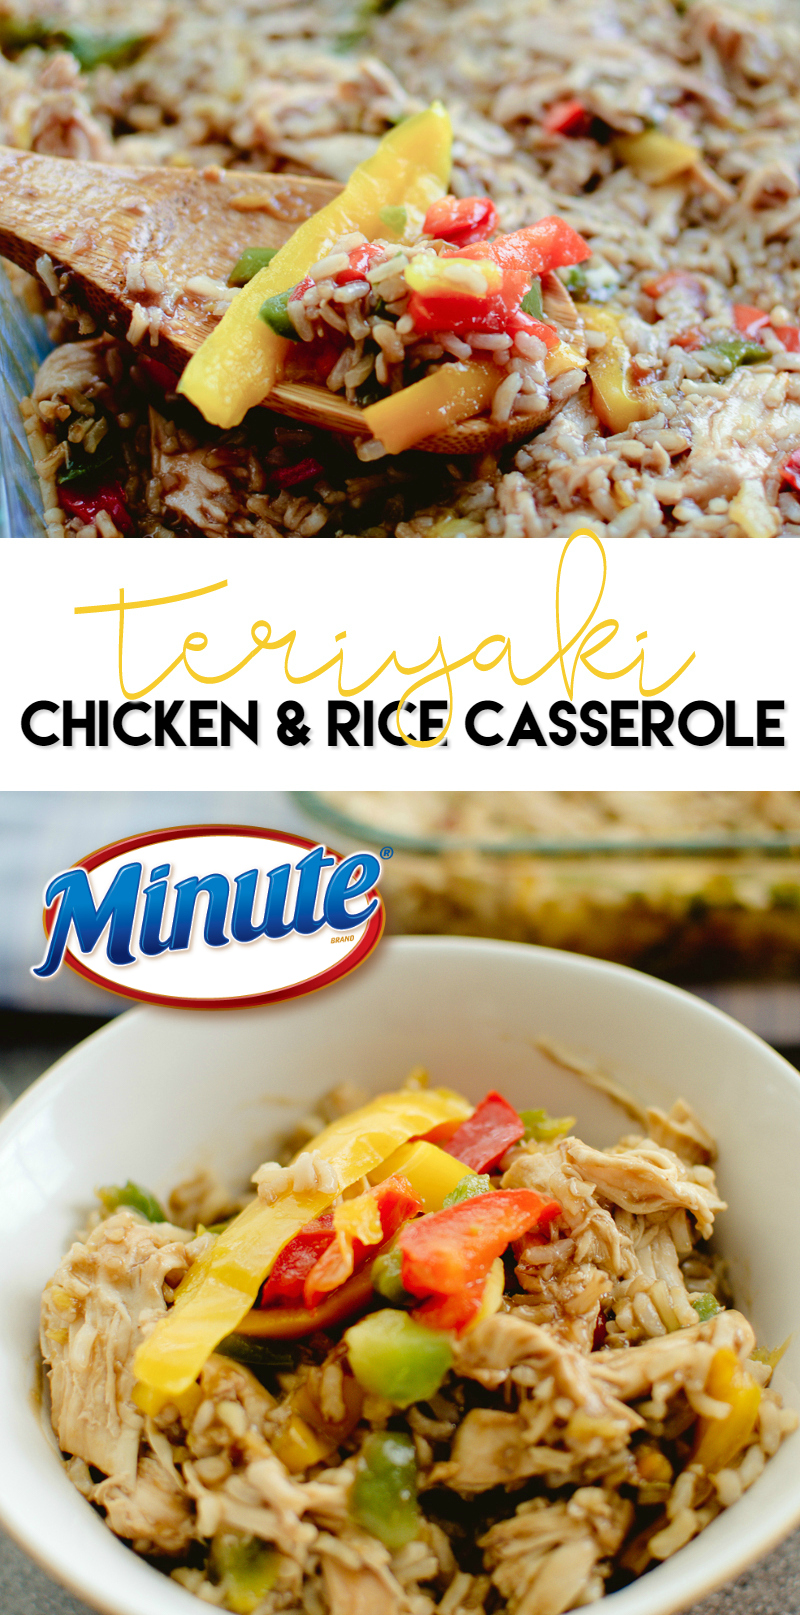 teriyaki-chicken-and-rice-casserole-with-minute-rice